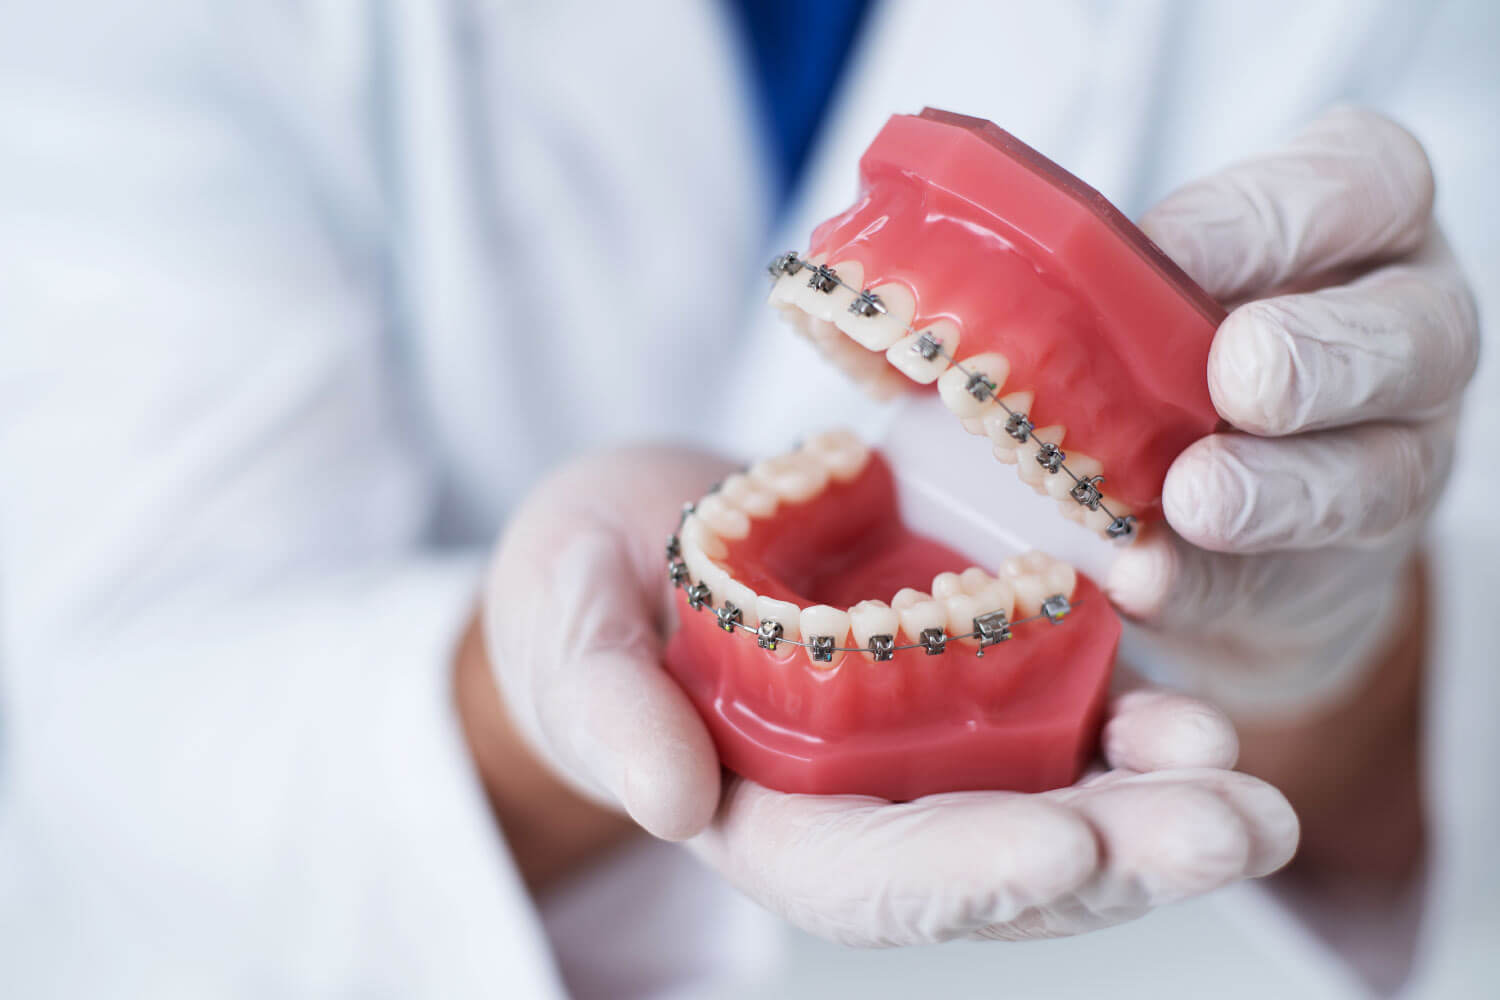 Closeup of an orthodontist with gloved hands holding a mouth of fake teeth with braces